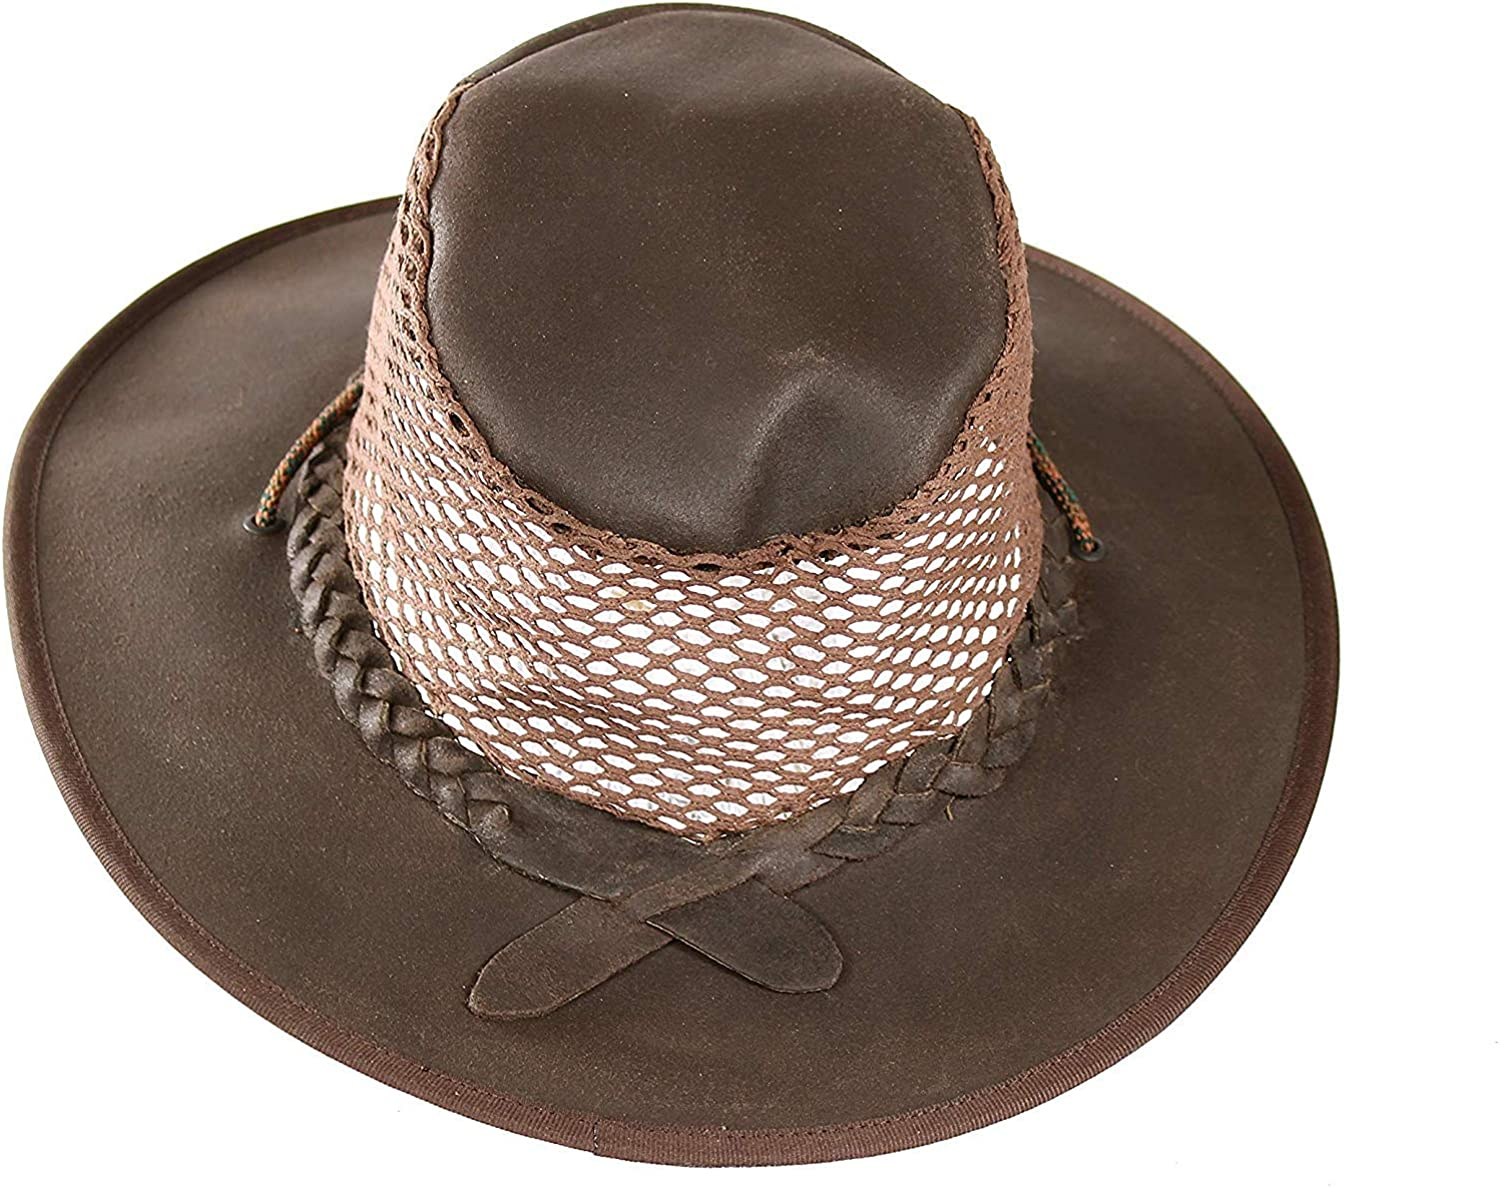 Cowboy//Outback//Aussie Style Leather Hat Hand Crafted in S Africa